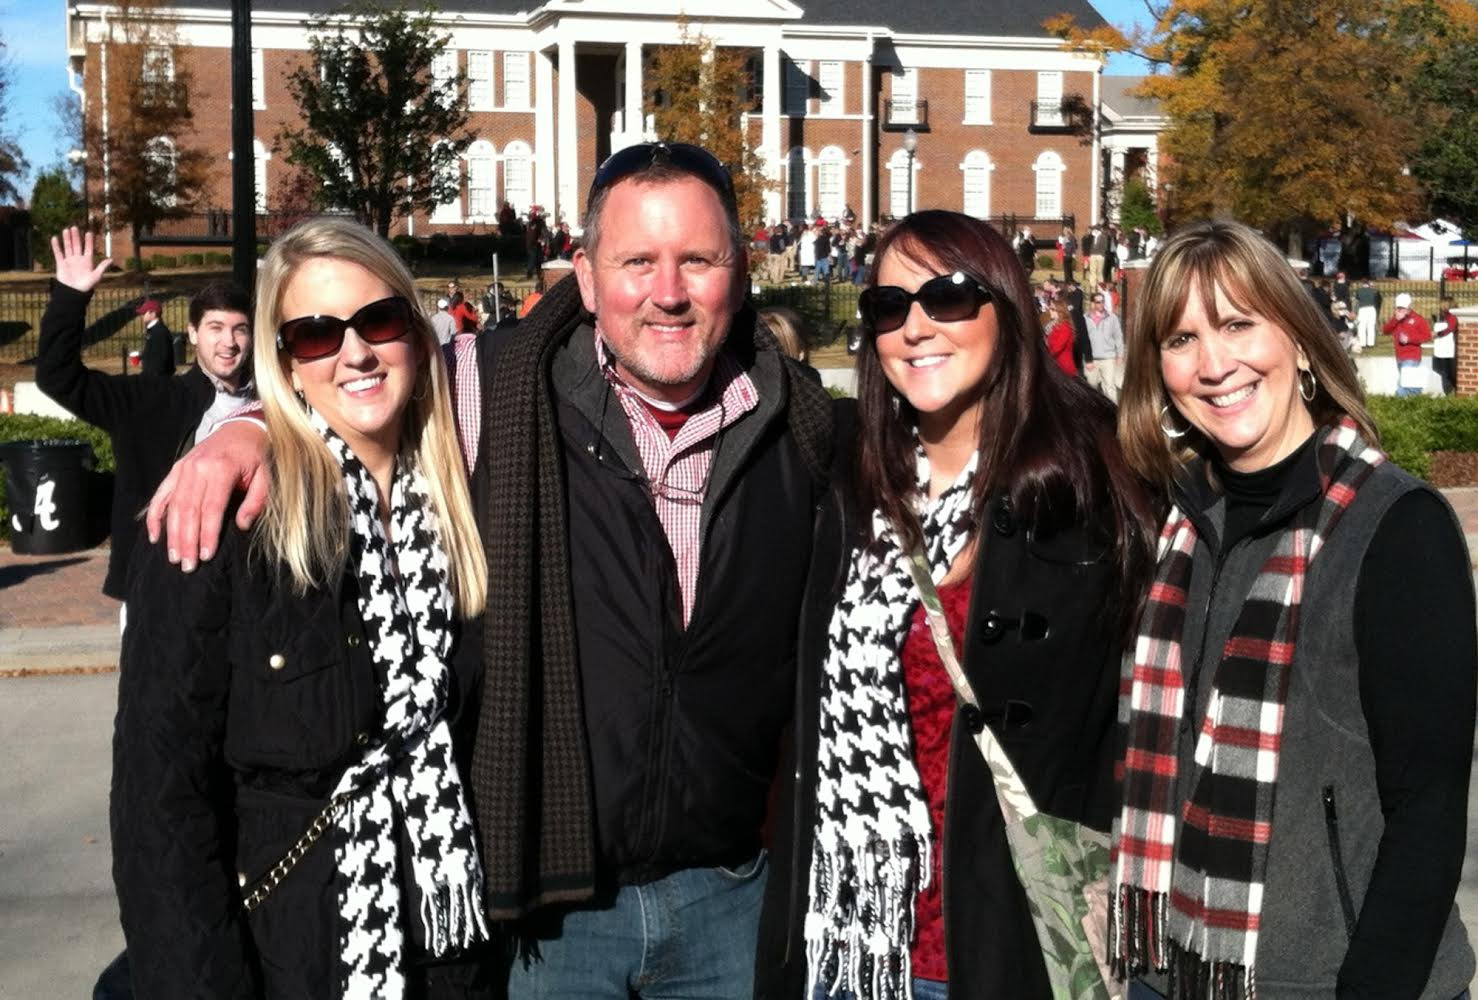 Rick Griffin of Midlife Road Trip with his wife and daughters in Tuscaloosa, Alabama